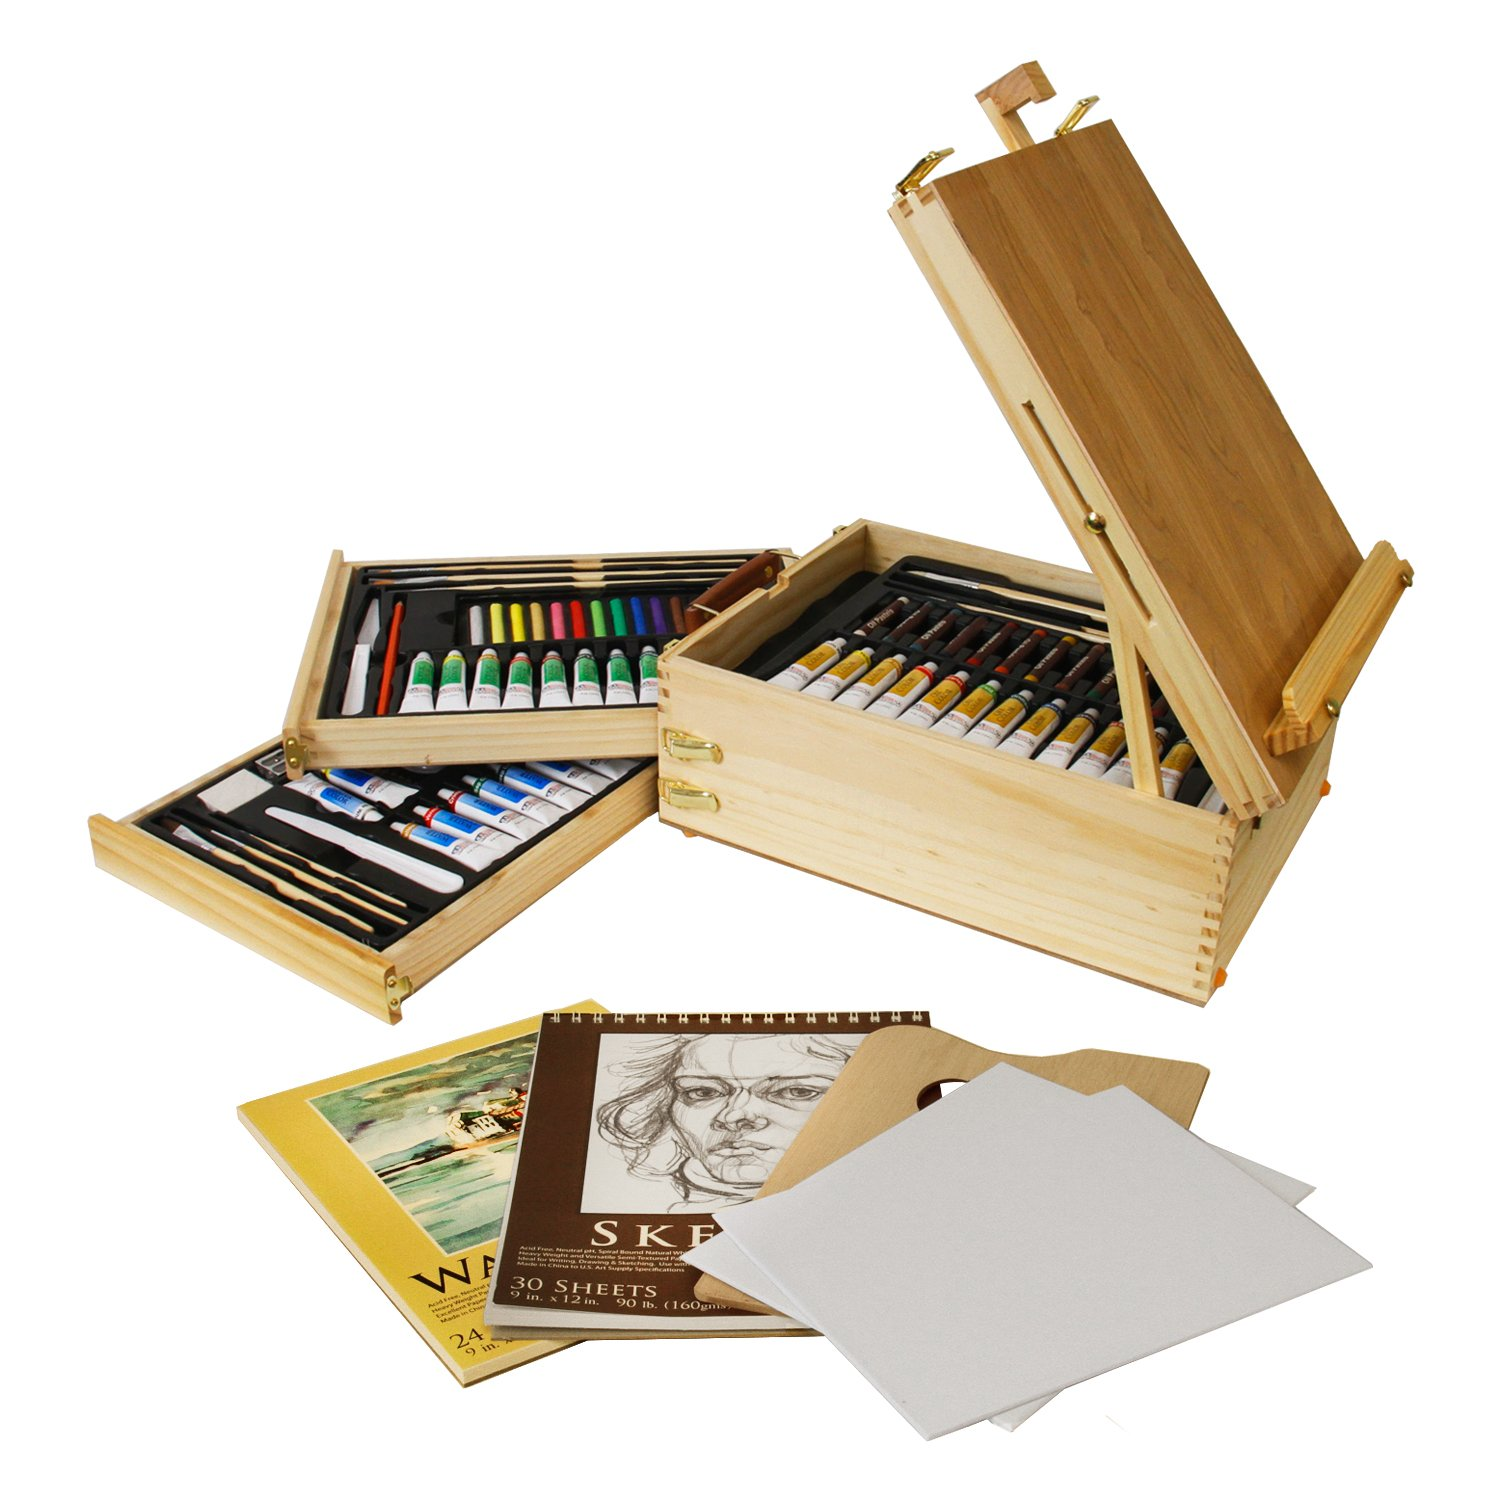 U.S. Art Supply 95 Piece Wood Box Easel Painting Set - Oil, Acrylic, Watercolor Paint Colors and Painting Brushes, Oil Artist Pastels, Pencils - Watercolor, Sketch Paper Pads - Canvas, Palette, Knifes by US Art Supply